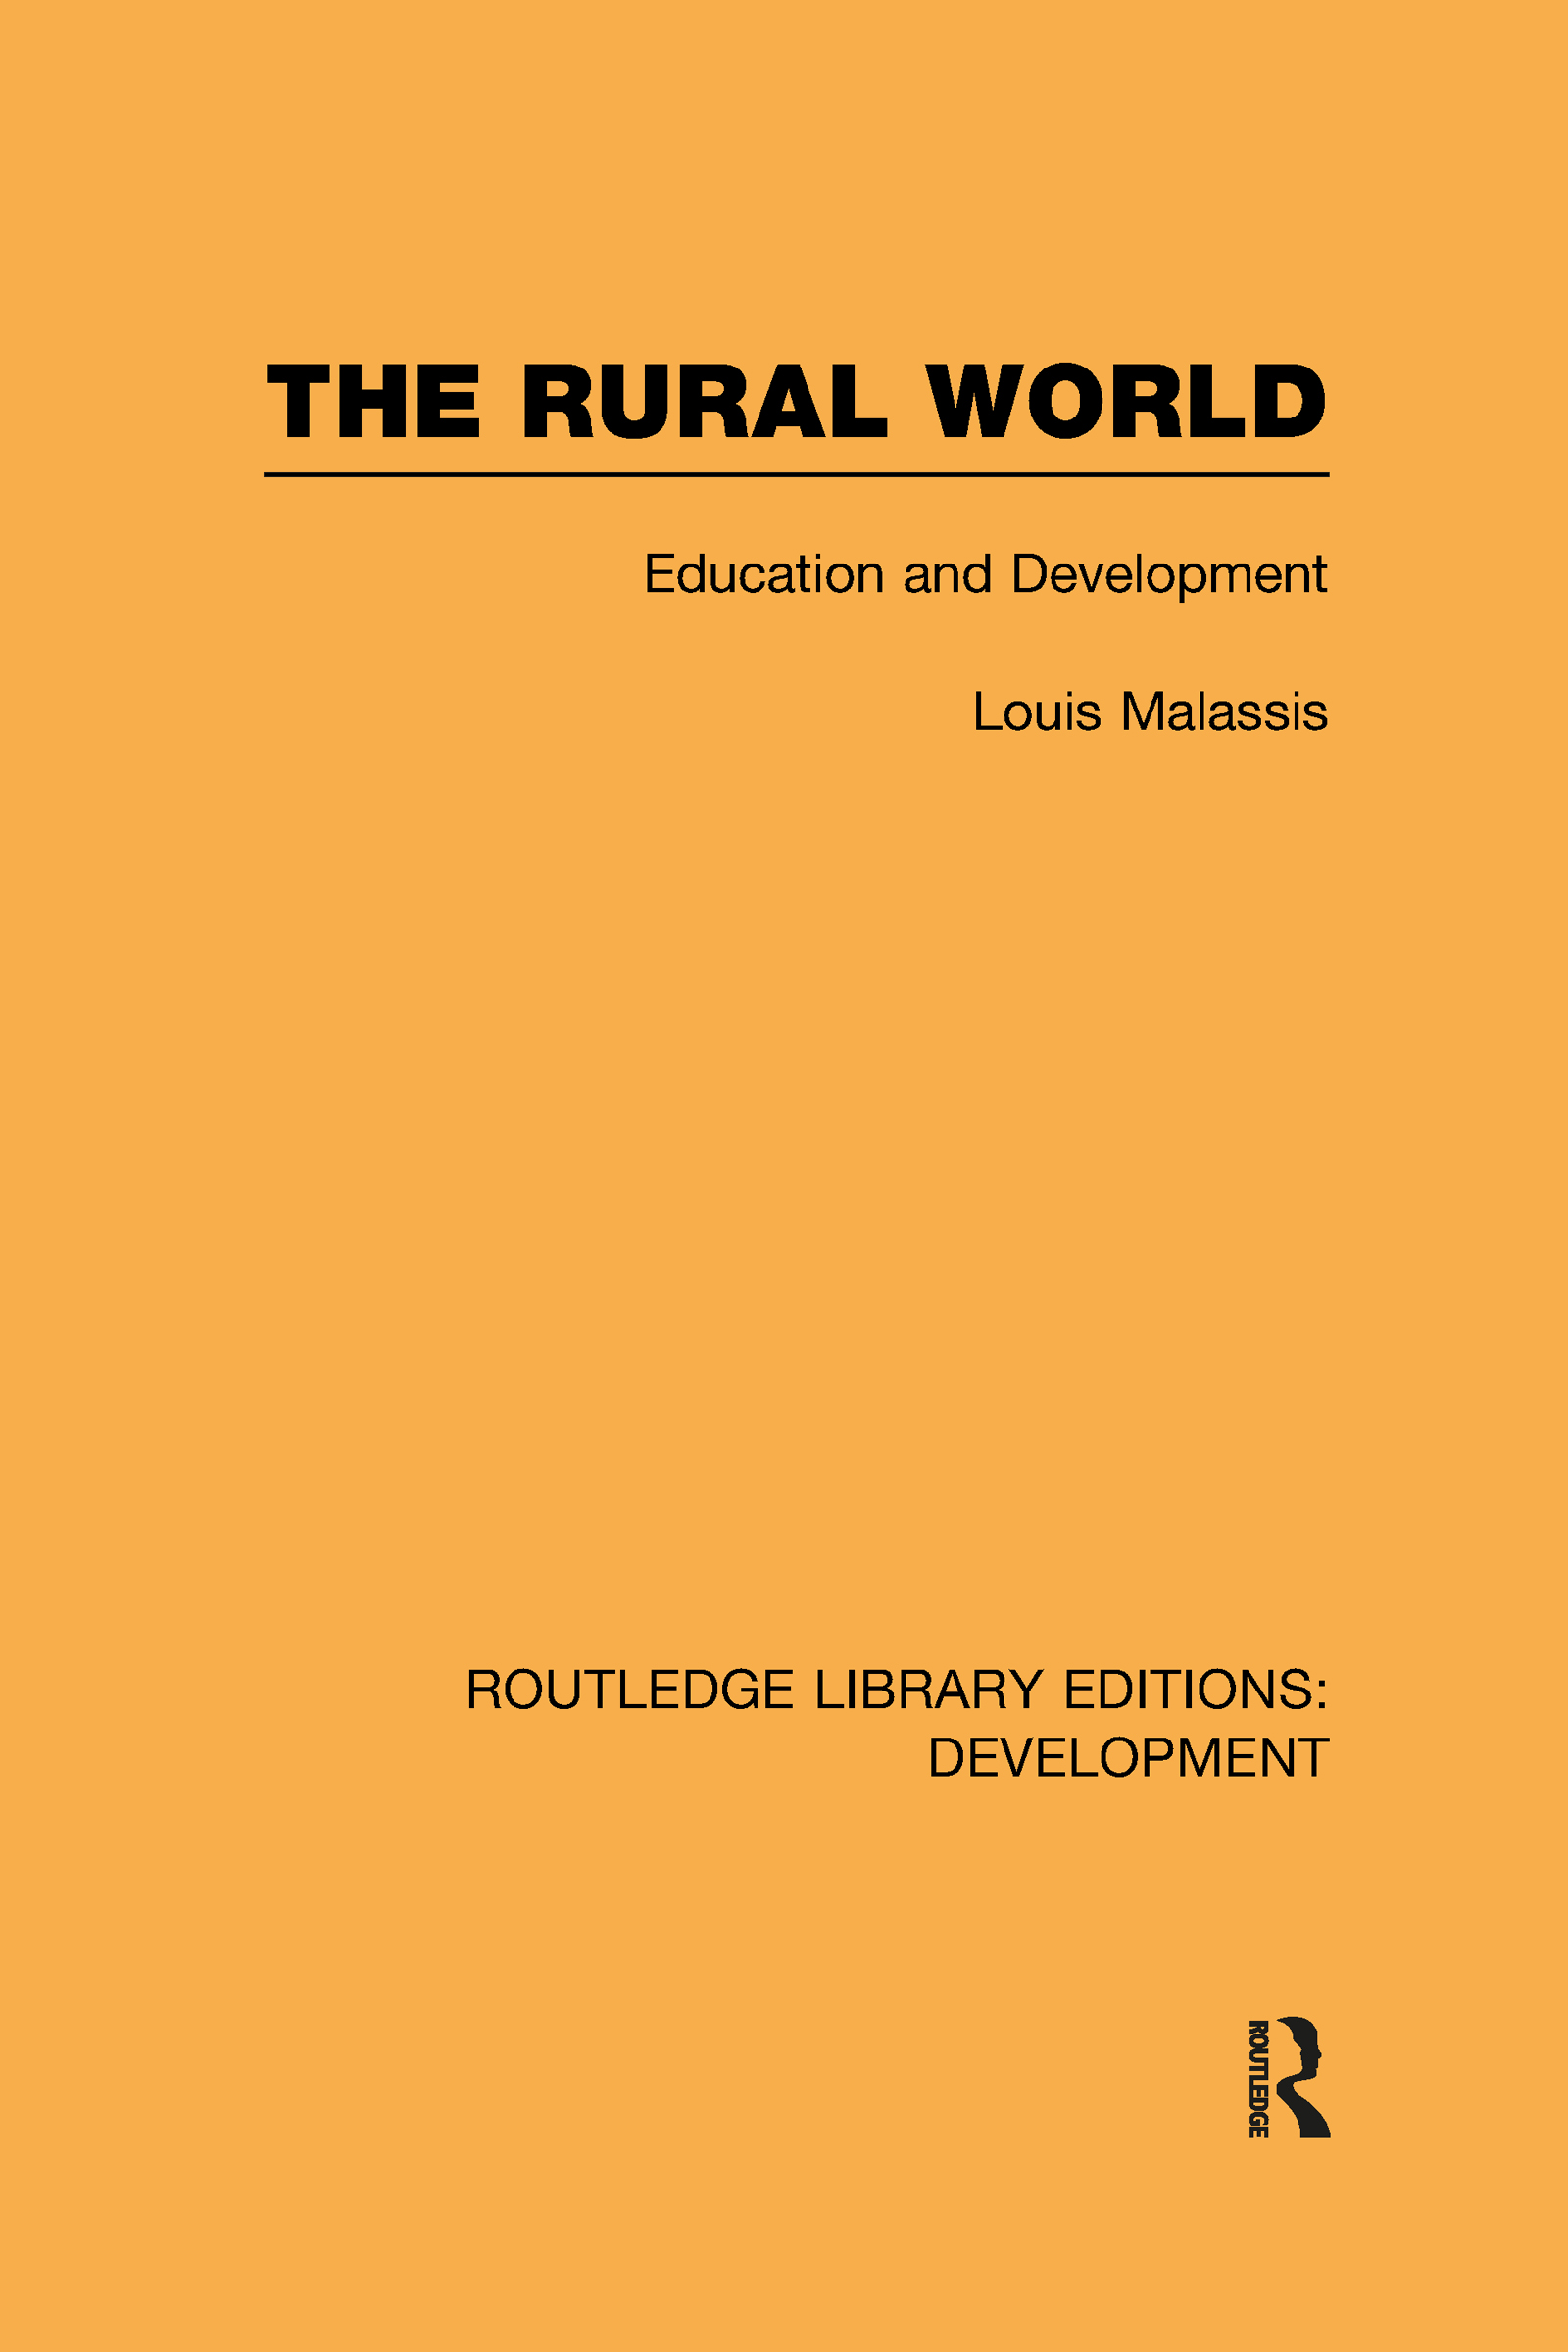 The Rural World